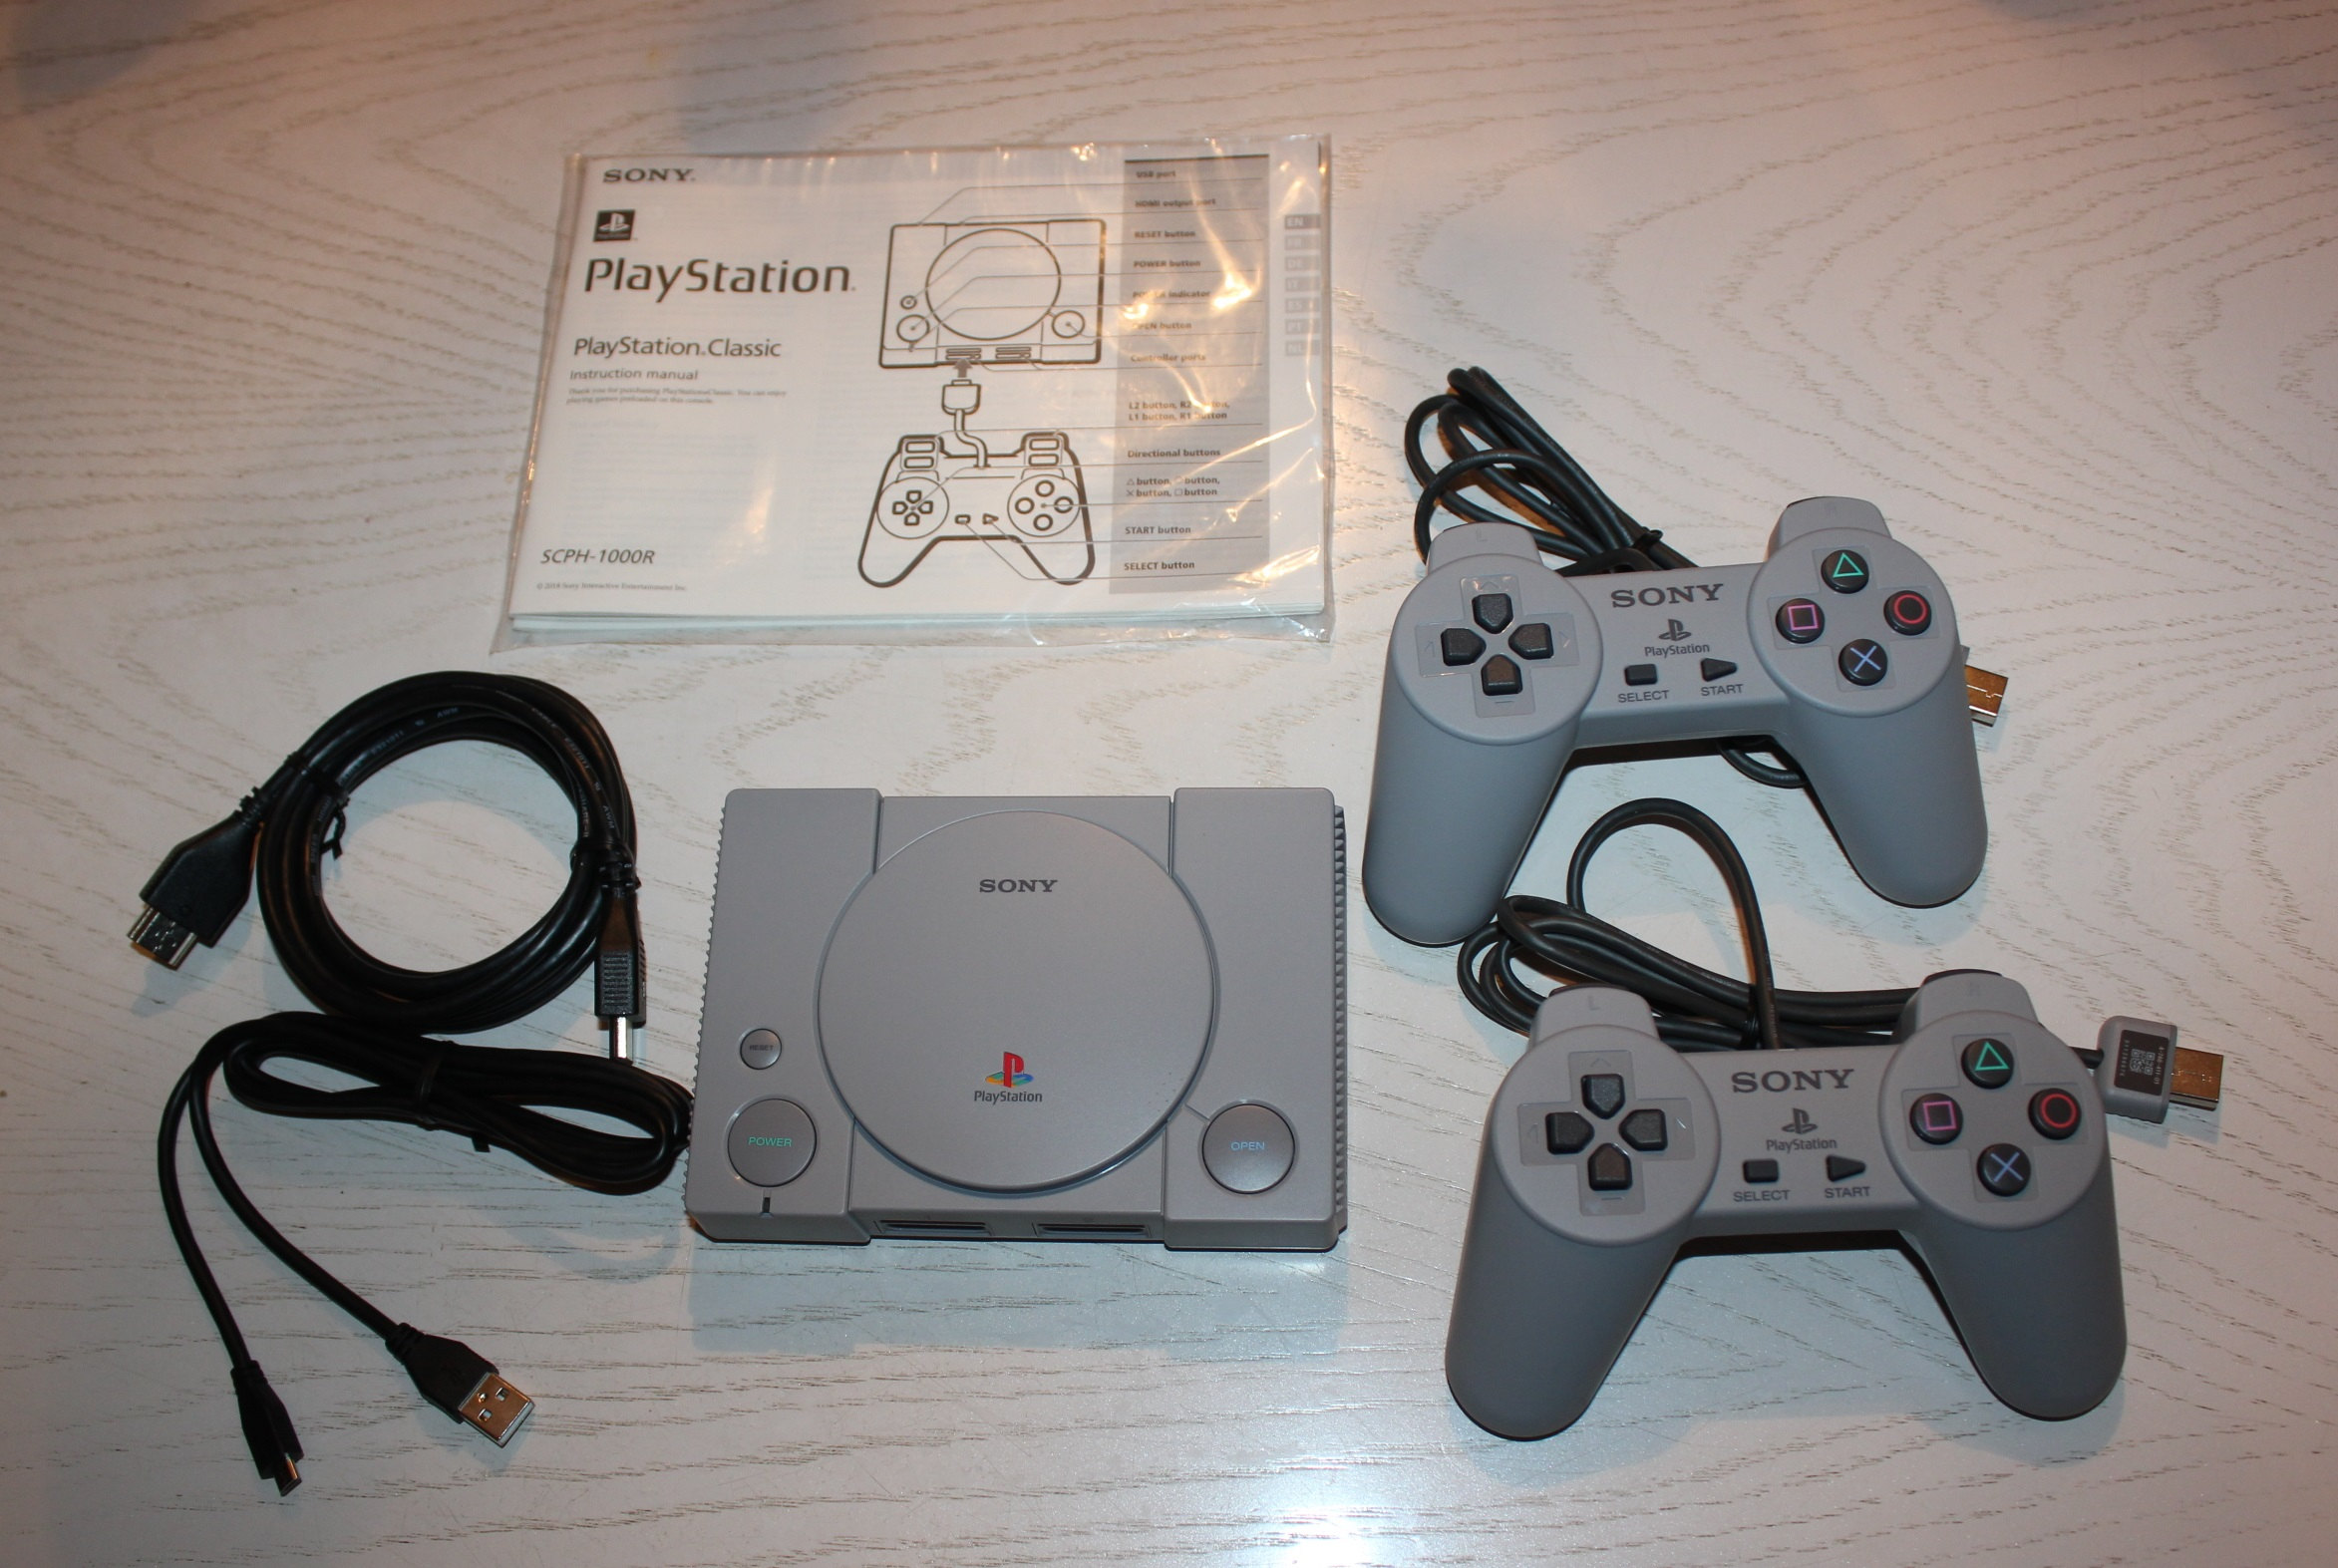 File:PlayStation Classic Lieferumfang jpg - Wikimedia Commons